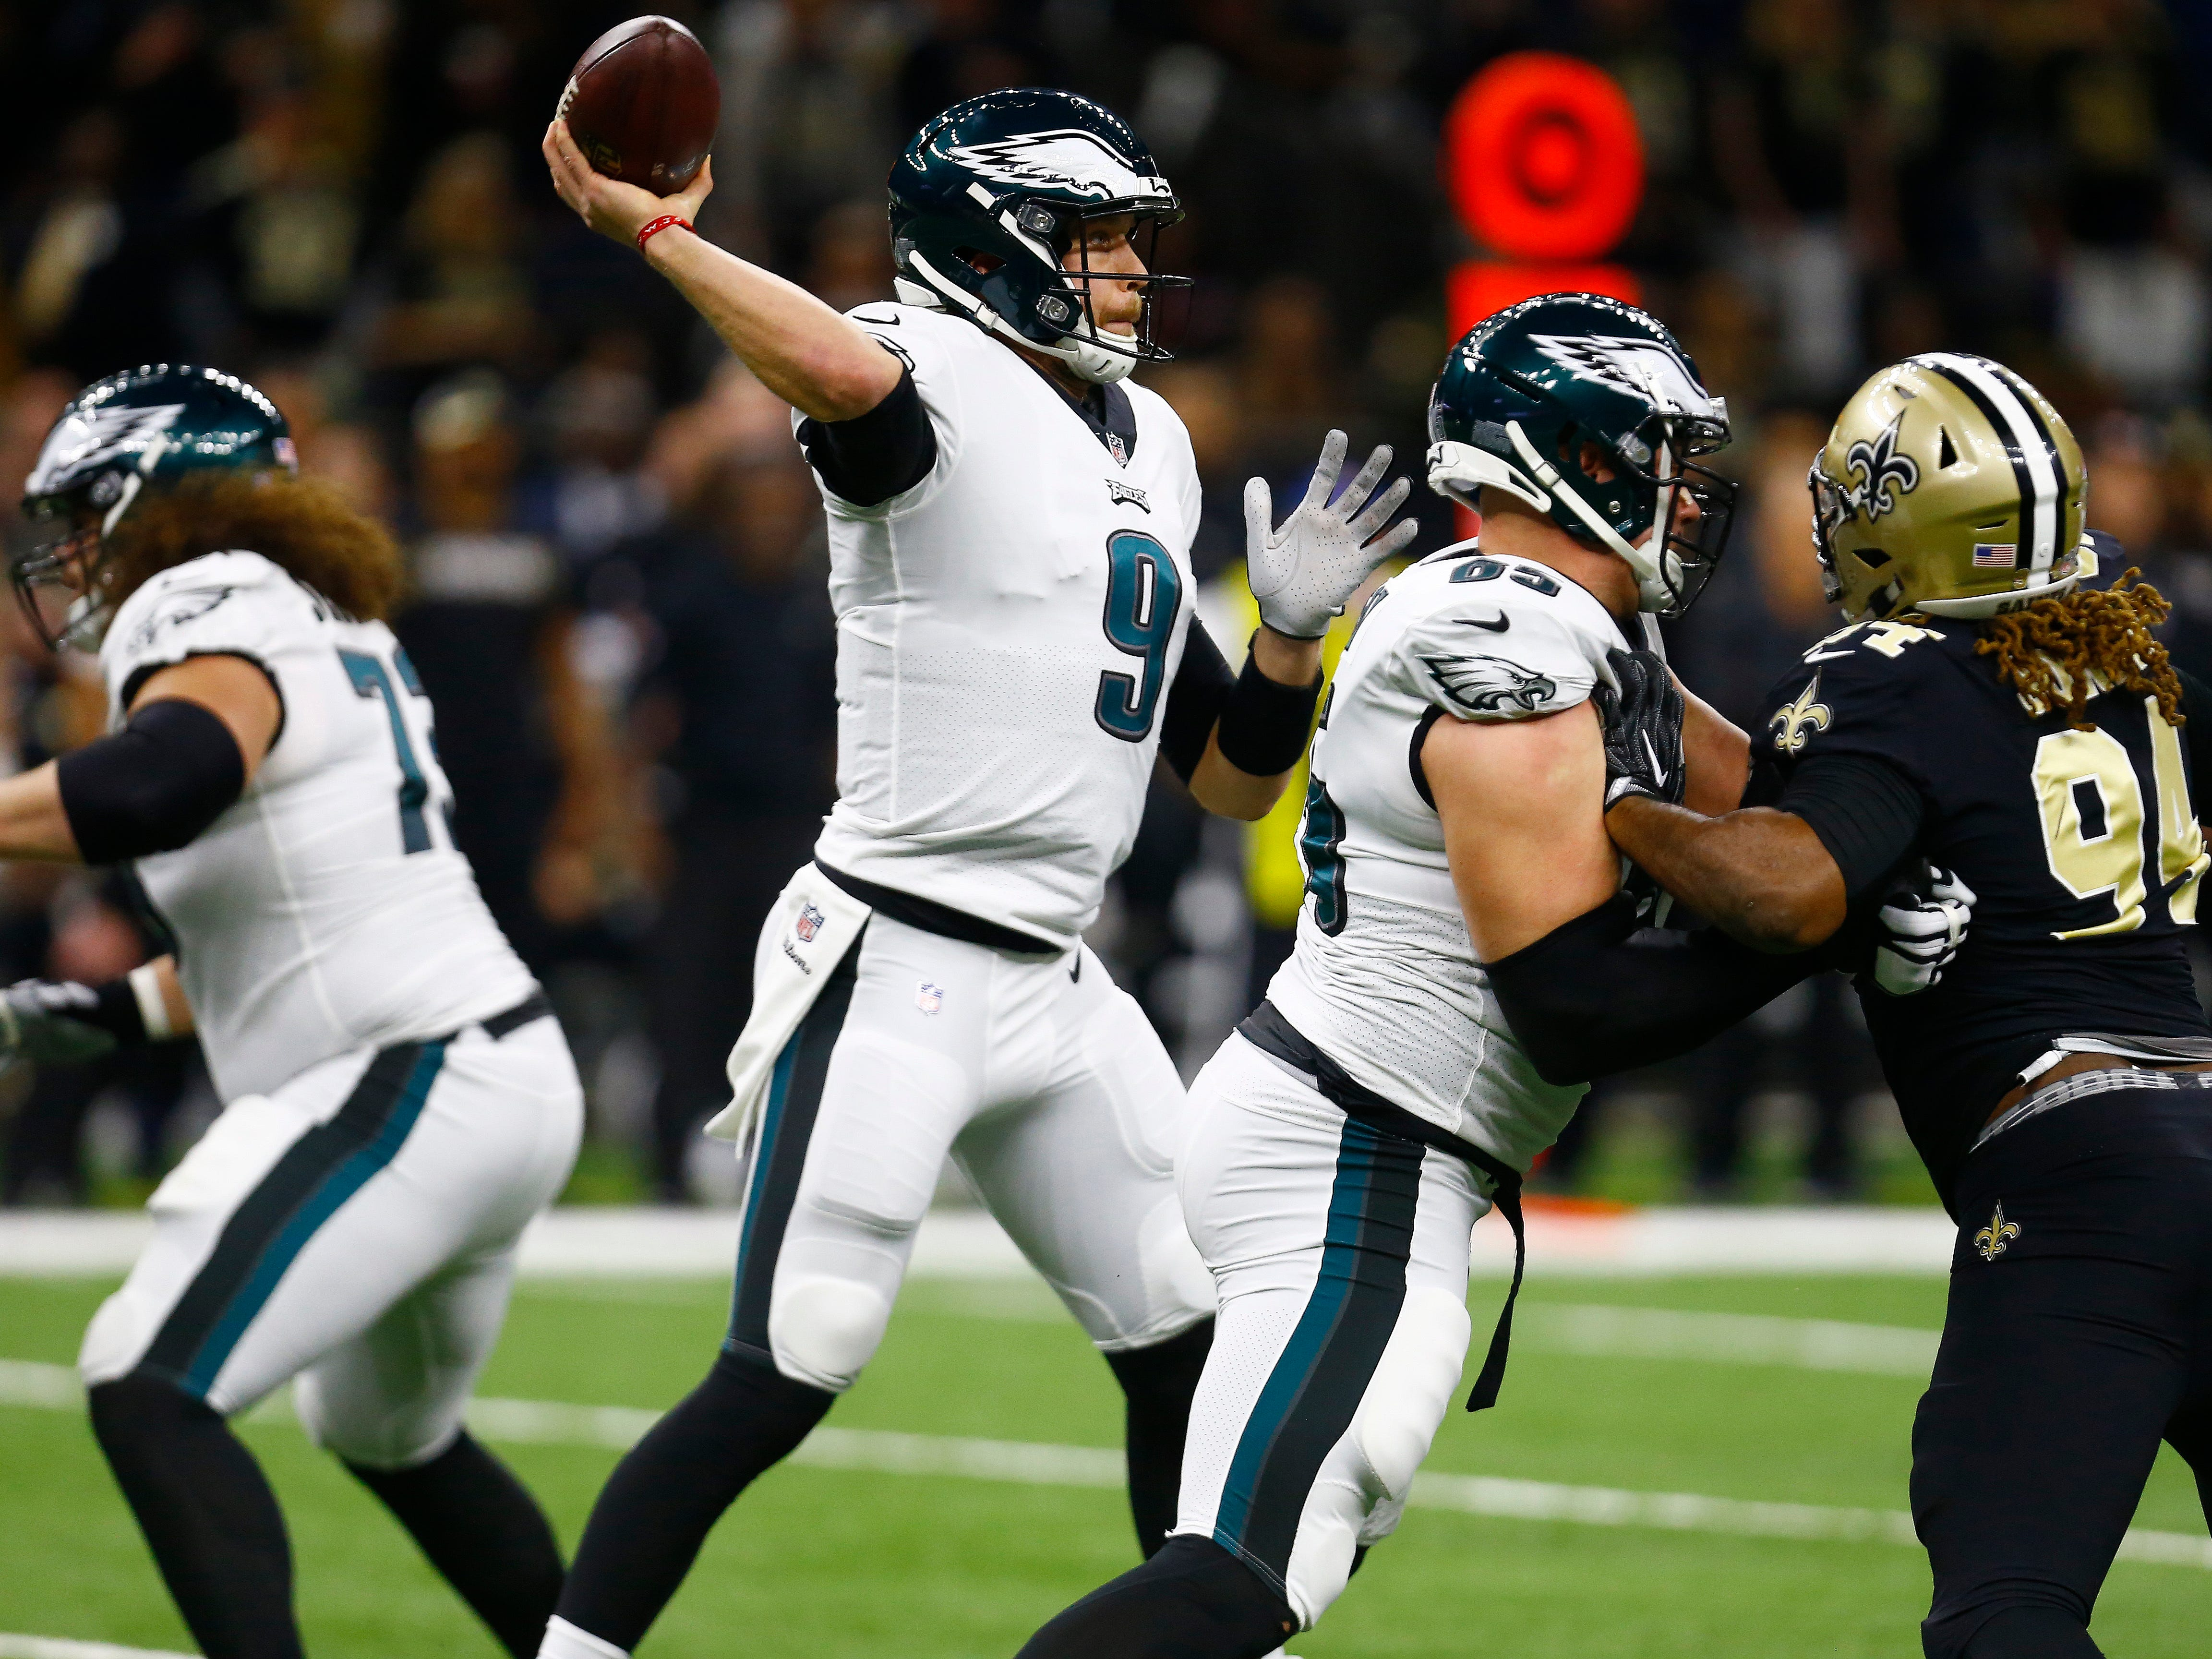 Nick Foles faces uncertain future after magic with Eagles runs out